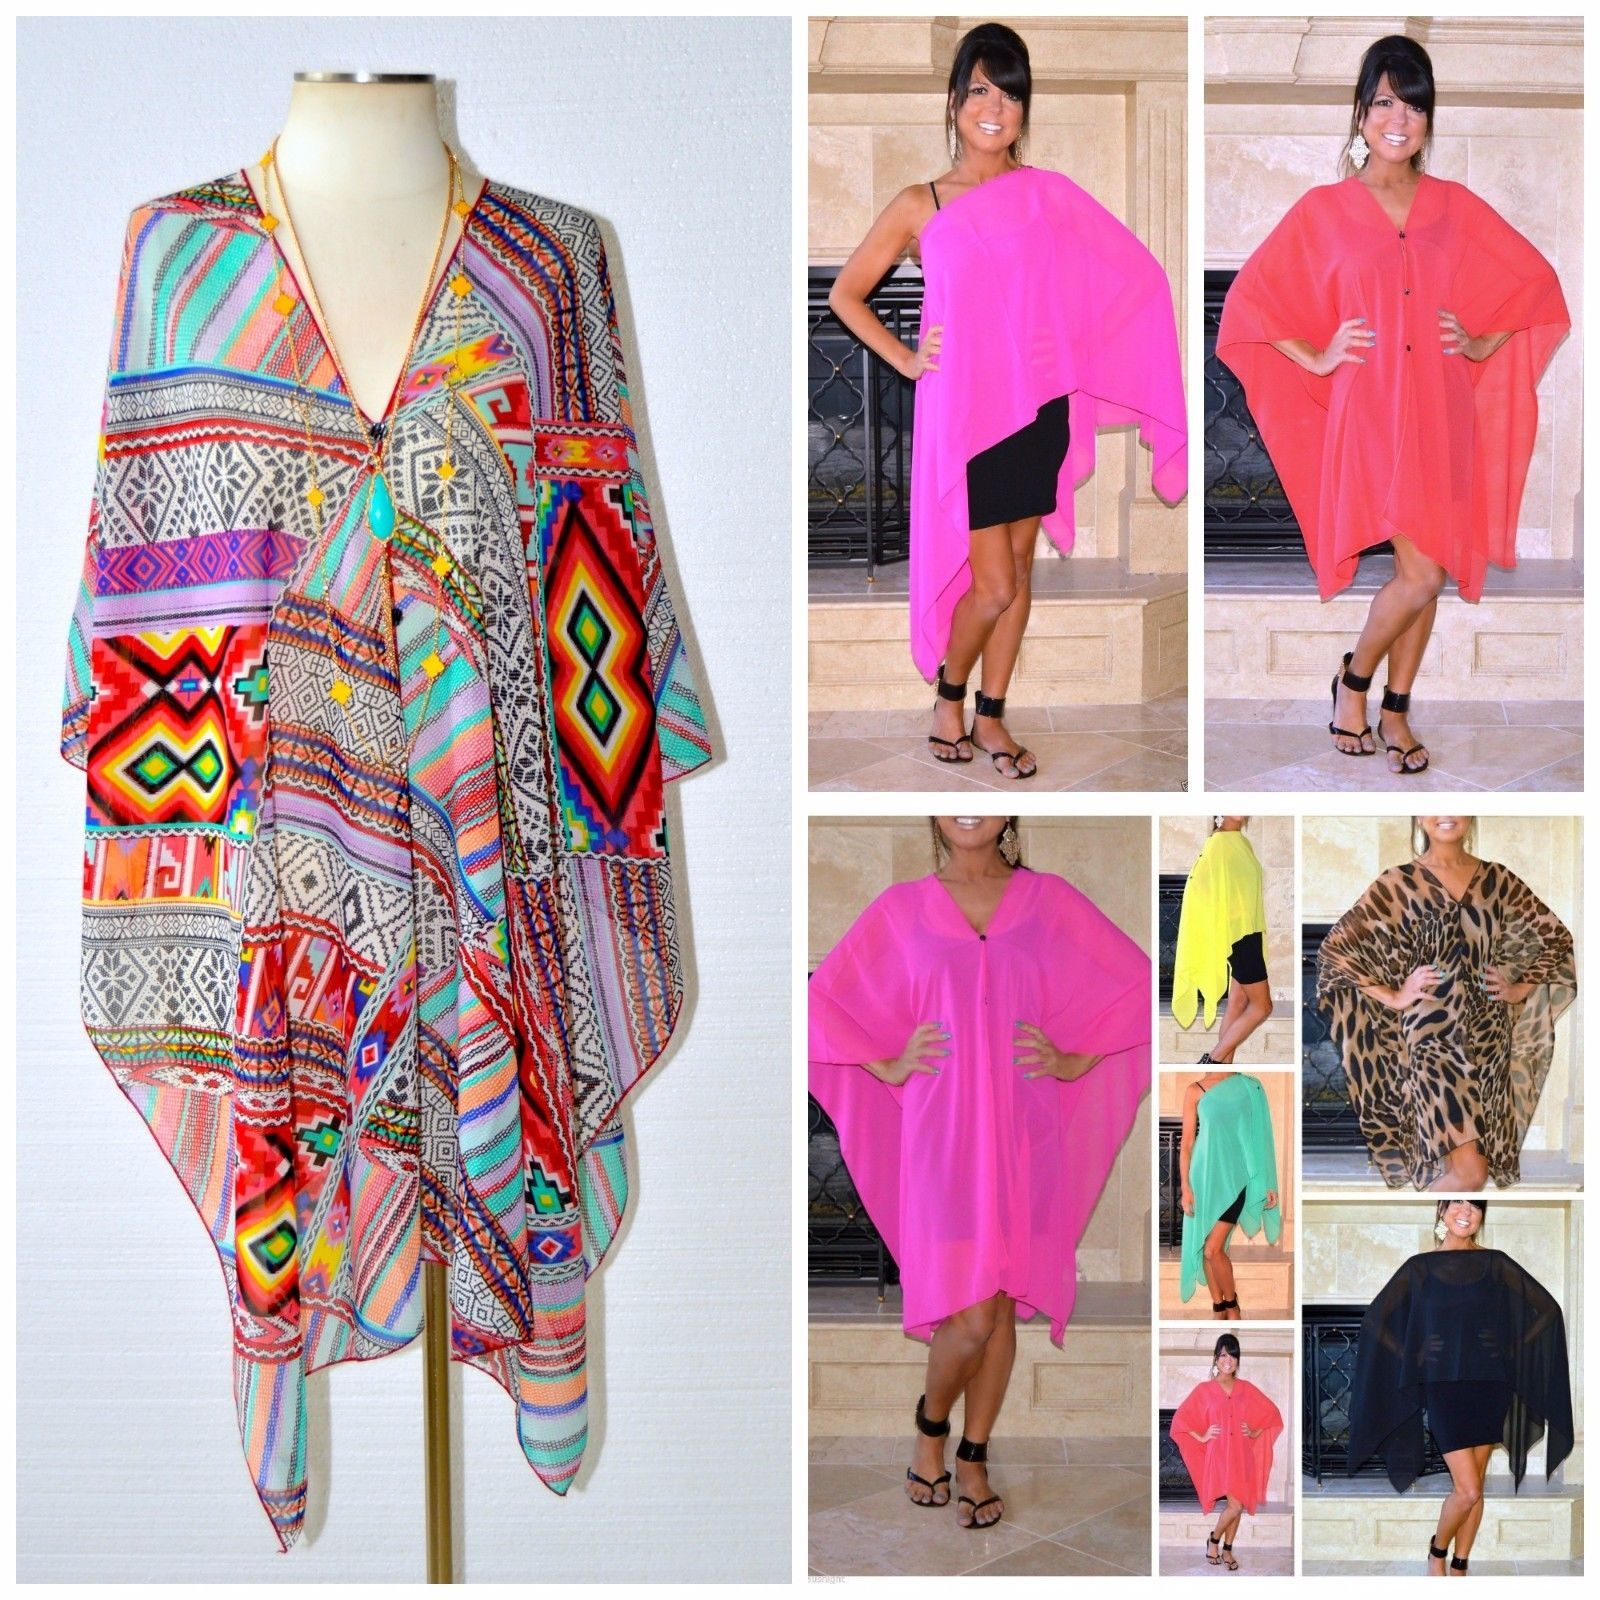 Ladies Sheer Convertible Summer Poncho Cover Up Multi Wear Top XS s M L XL 1x 2X | eBay